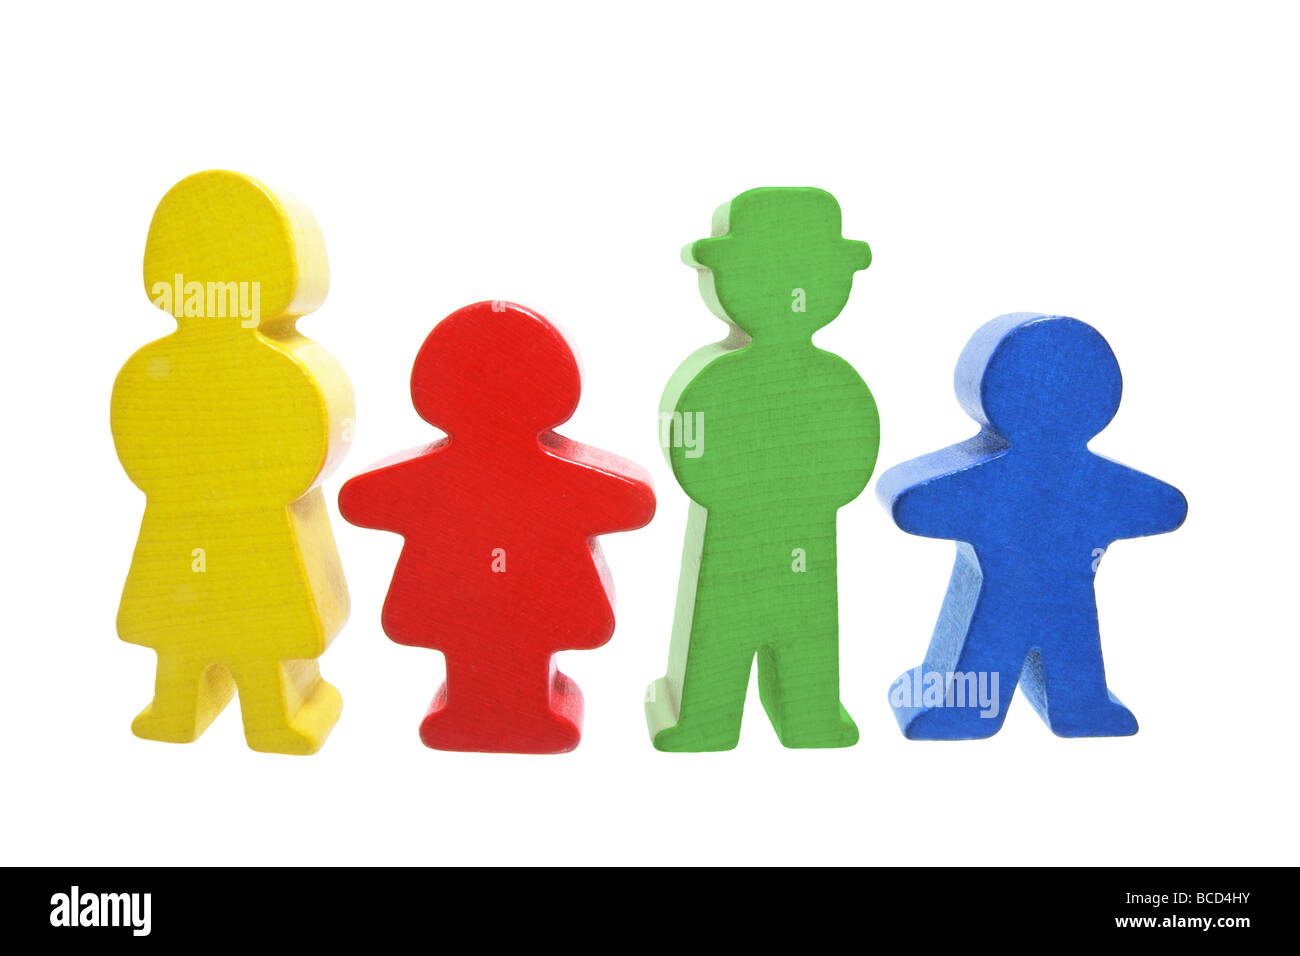 Wooden Family Figures - Stock Image